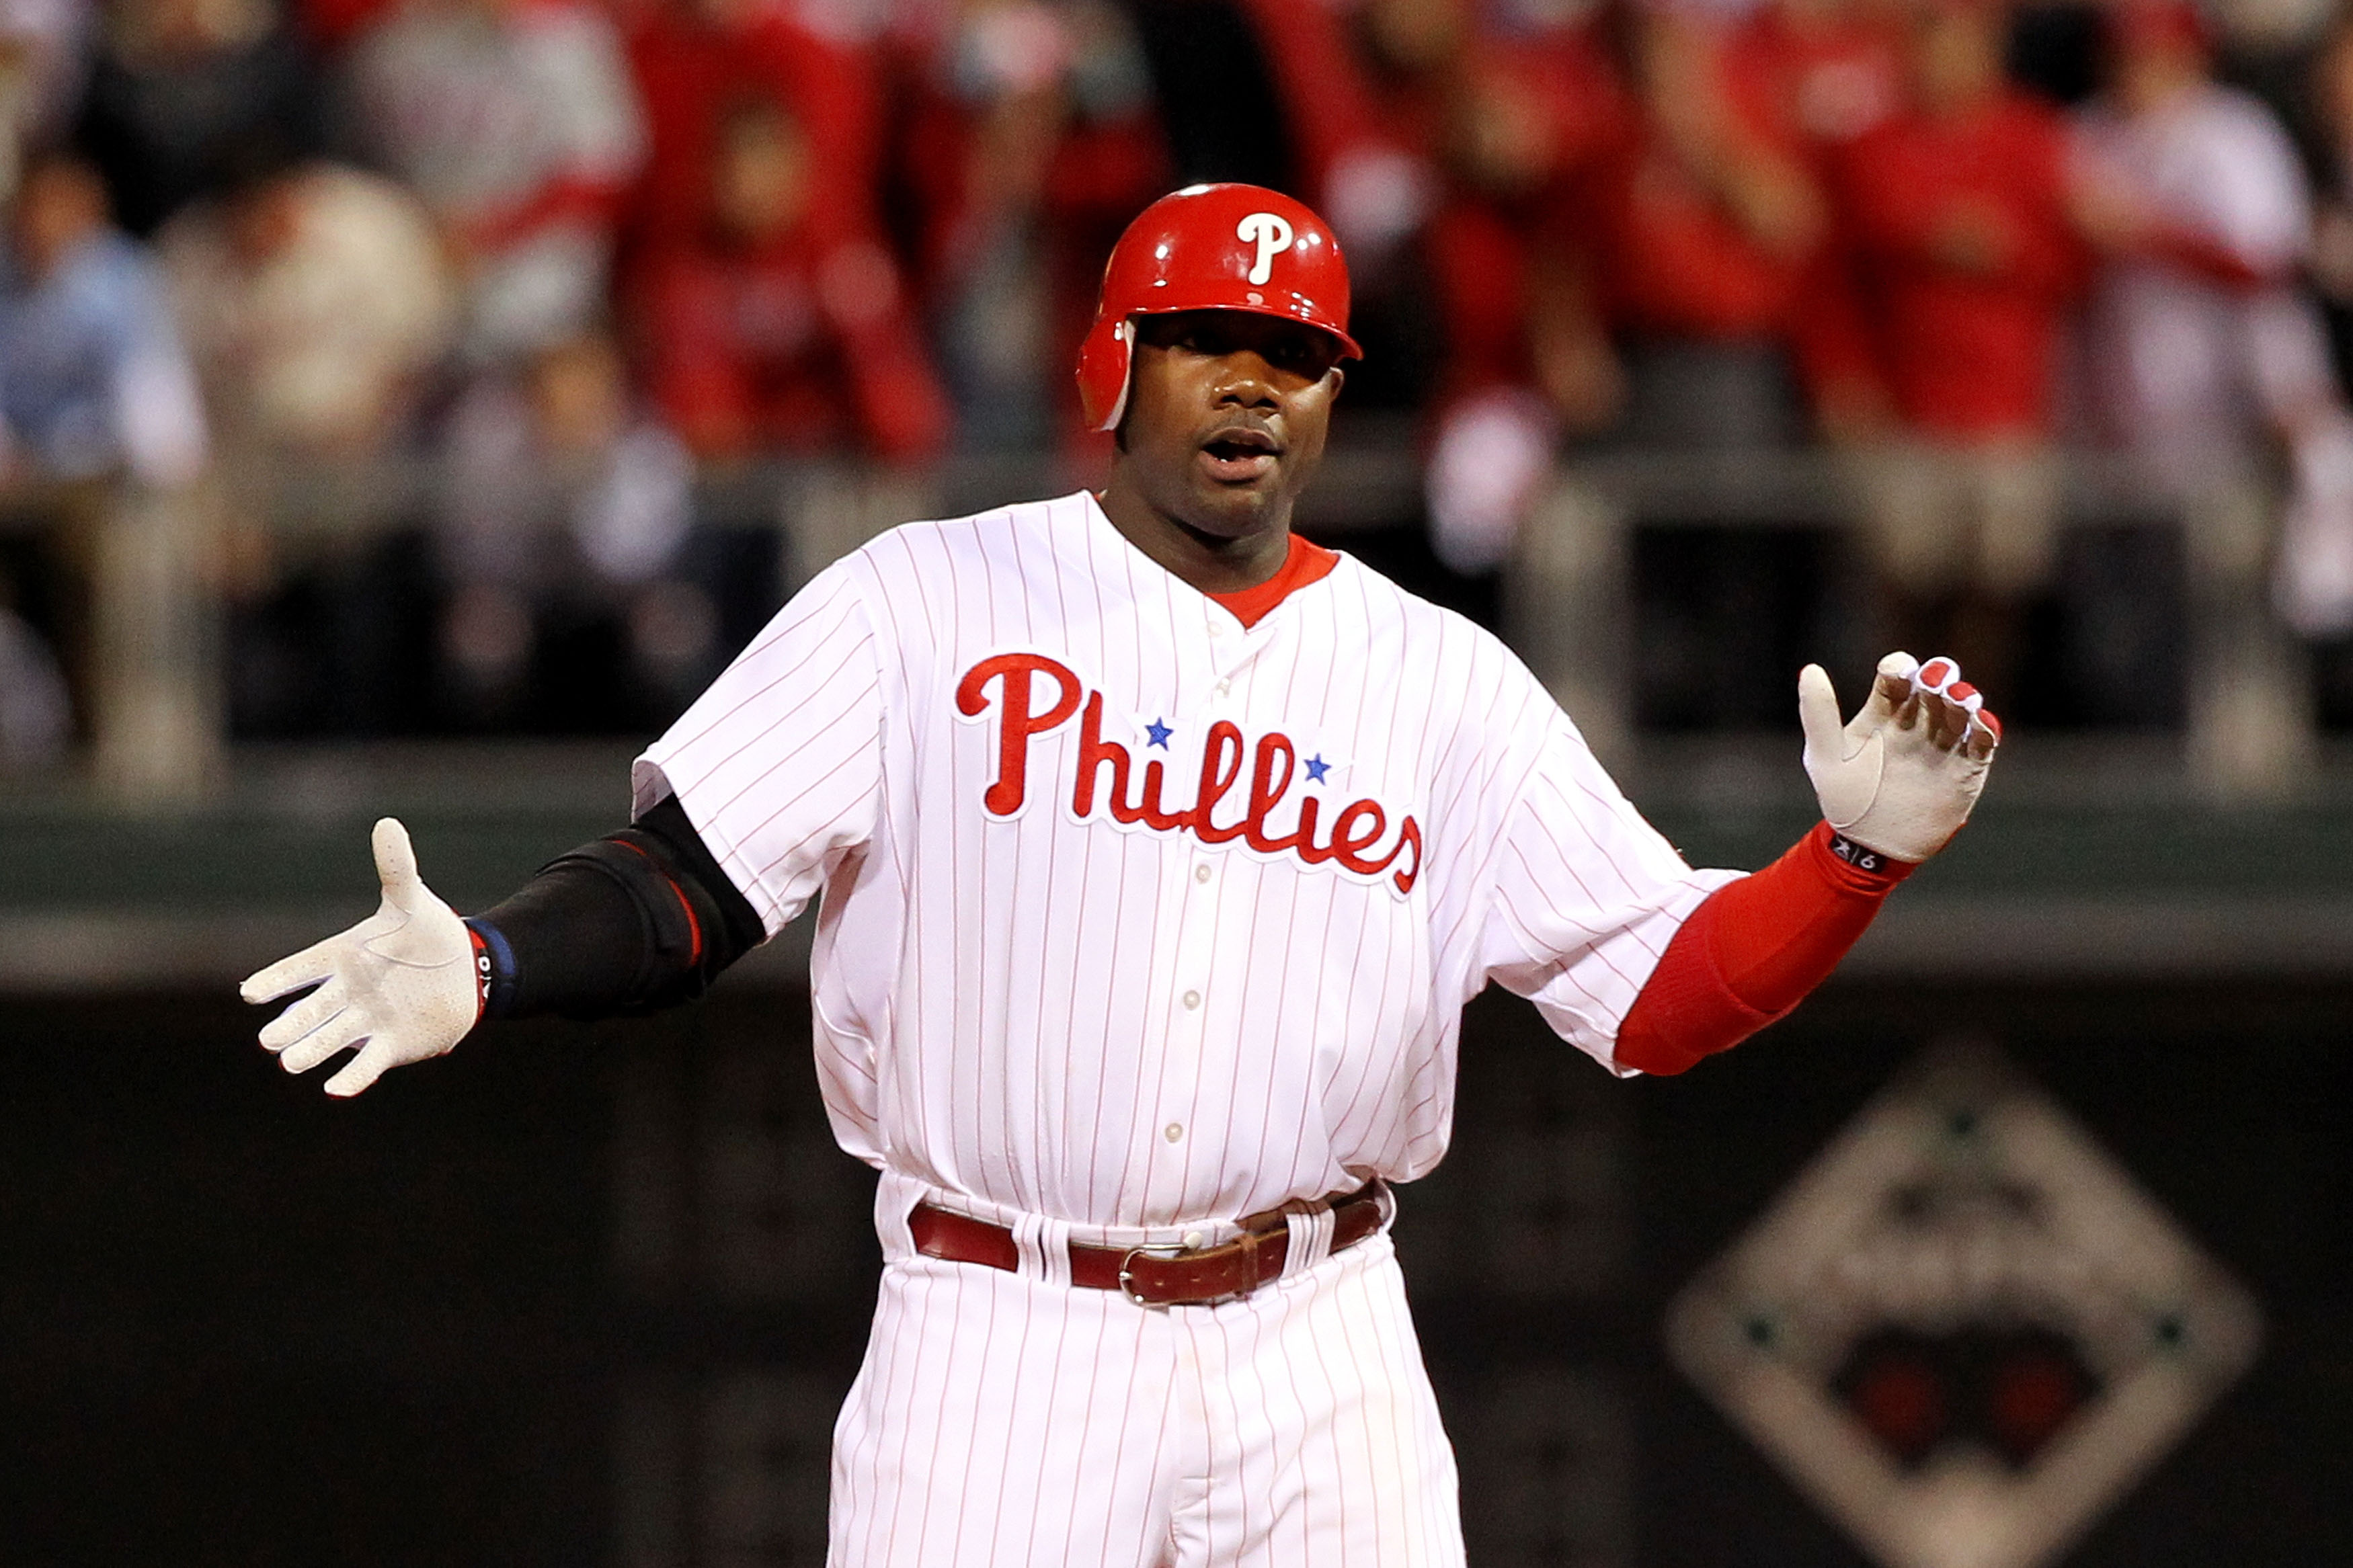 PHILADELPHIA - OCTOBER 23:  Ryan Howard #6 of the Philadelphia Phillies reacts after a double in fifth inning against the San Francisco Giants in Game Six of the NLCS during the 2010 MLB Playoffs at Citizens Bank Park on October 23, 2010 in Philadelphia,